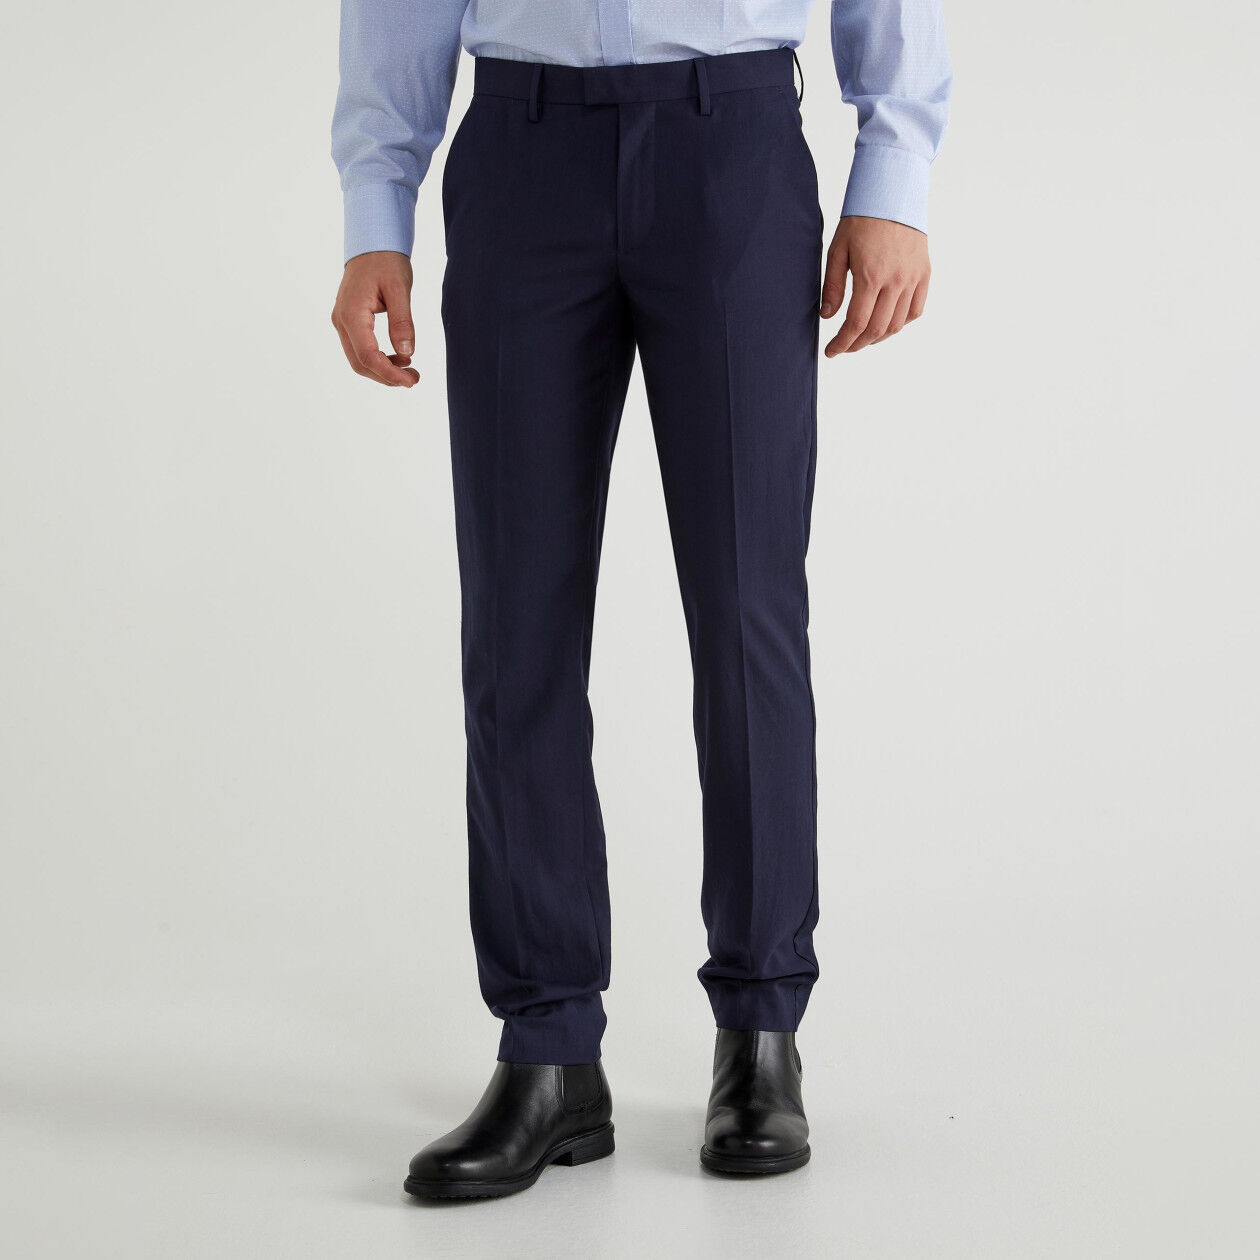 Pants with ironed crease